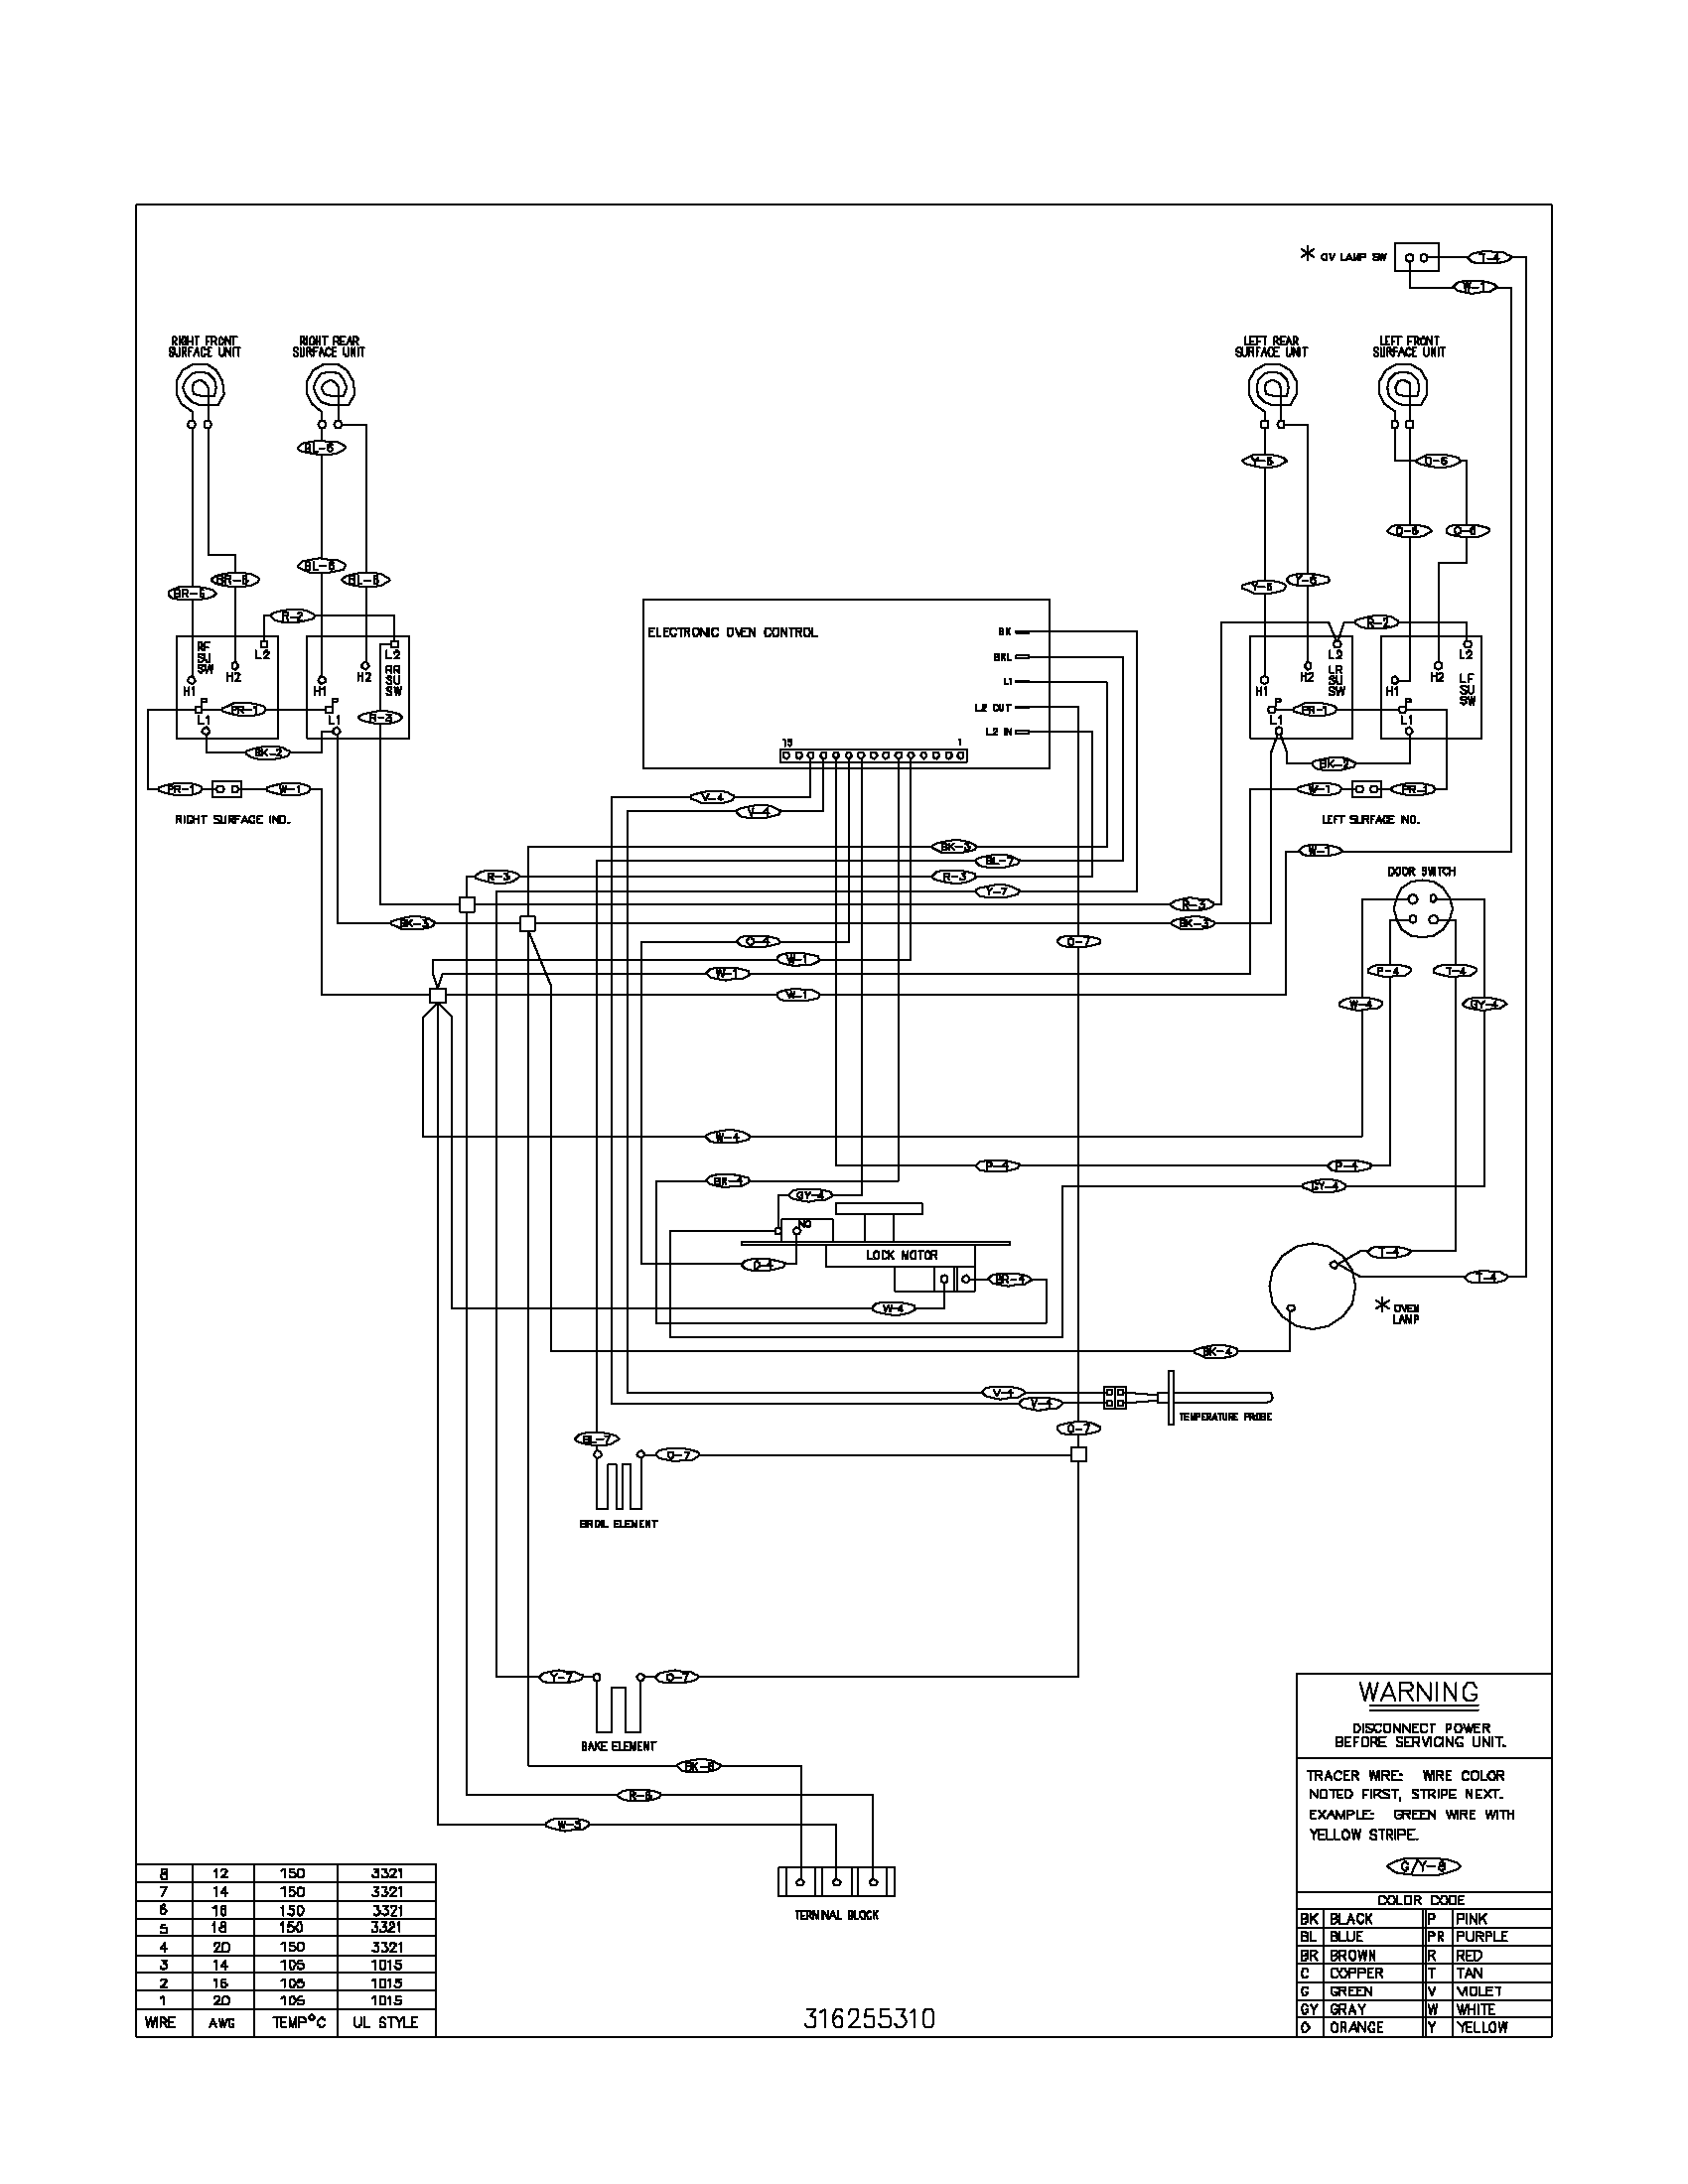 wiring diagram parts frigidaire wiring diagram manufacturing wiring diagram \u2022 free frigidaire dryer wiring diagram at readyjetset.co